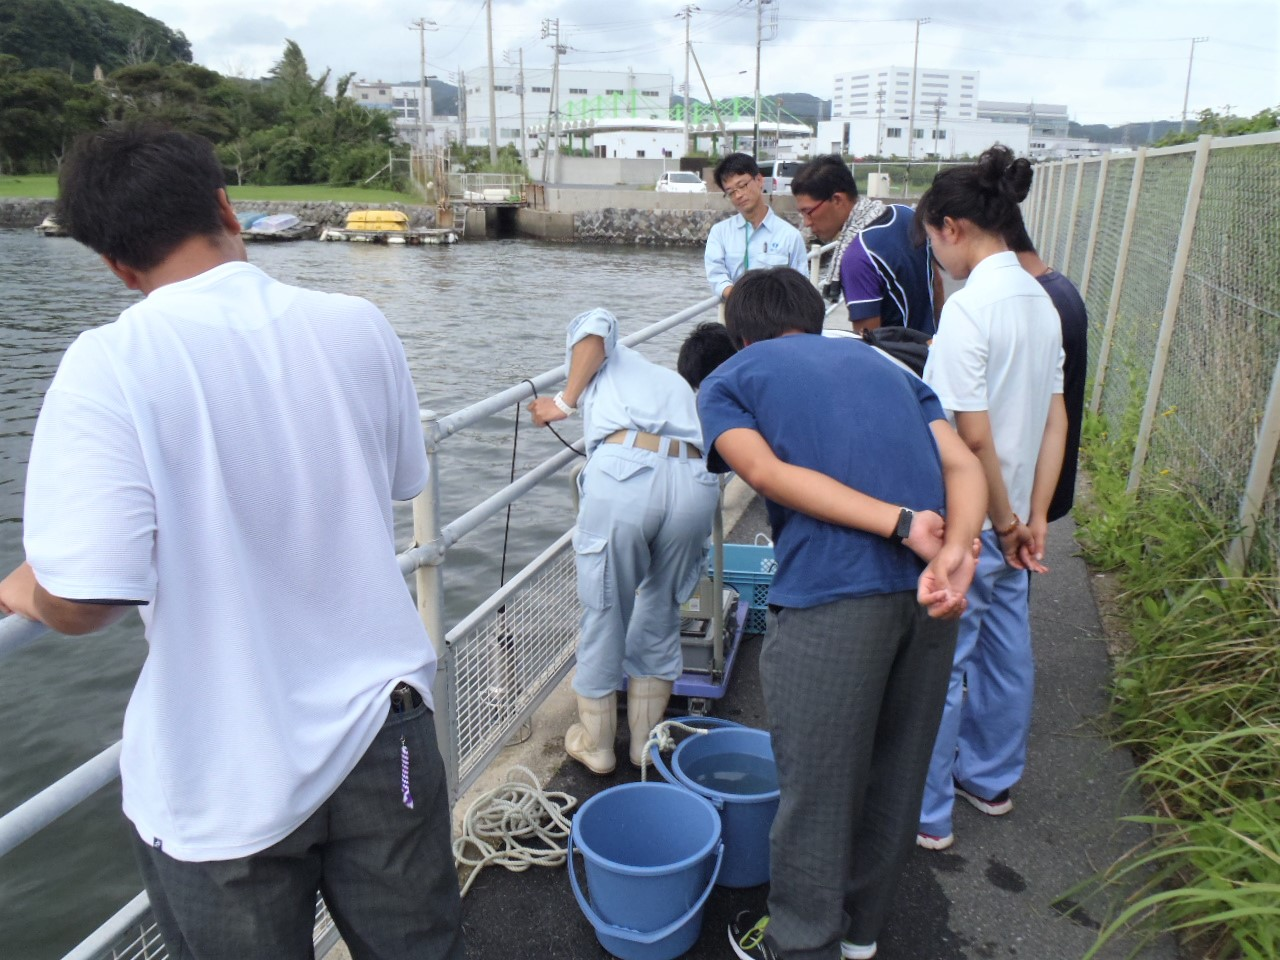 Measuring water temperature and pH as part of a coastal survey with students of Kanagawa Prefectural Marine Science High School (August 2017)